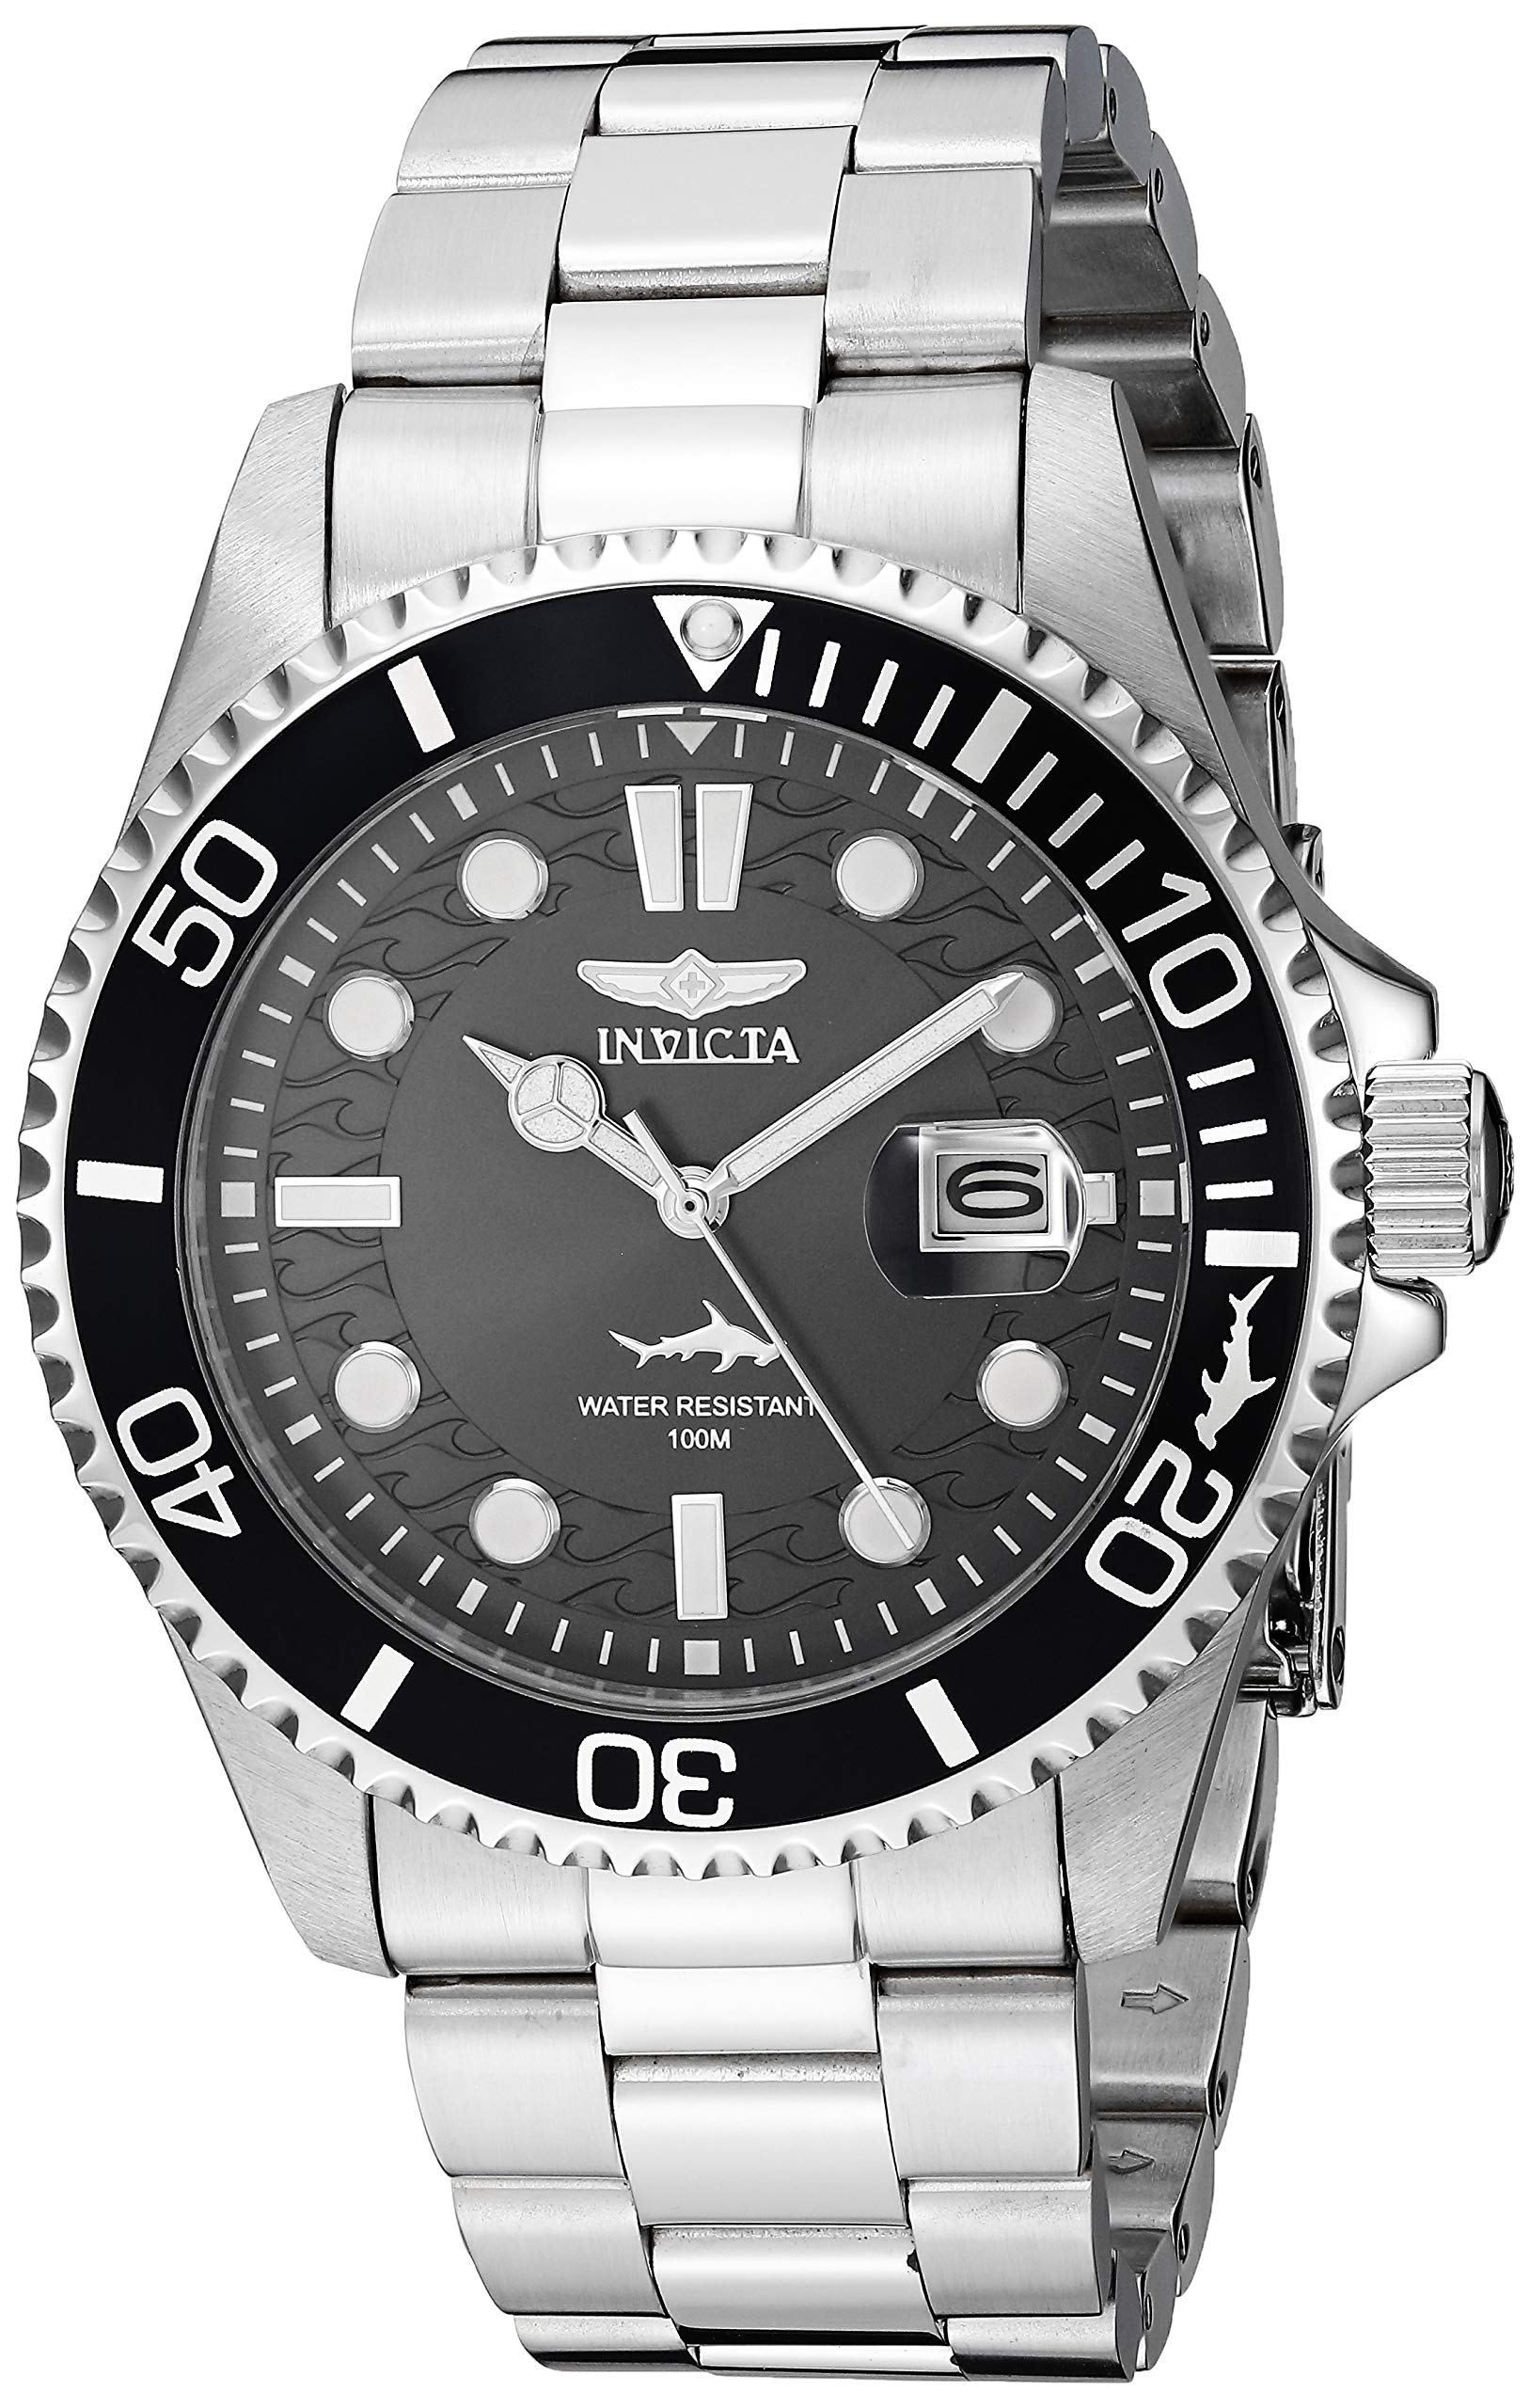 Invicta Men's Pro Diver Quartz Watch with Stainless Steel Strap, Silver, 22 (Model: 30018) by Invicta